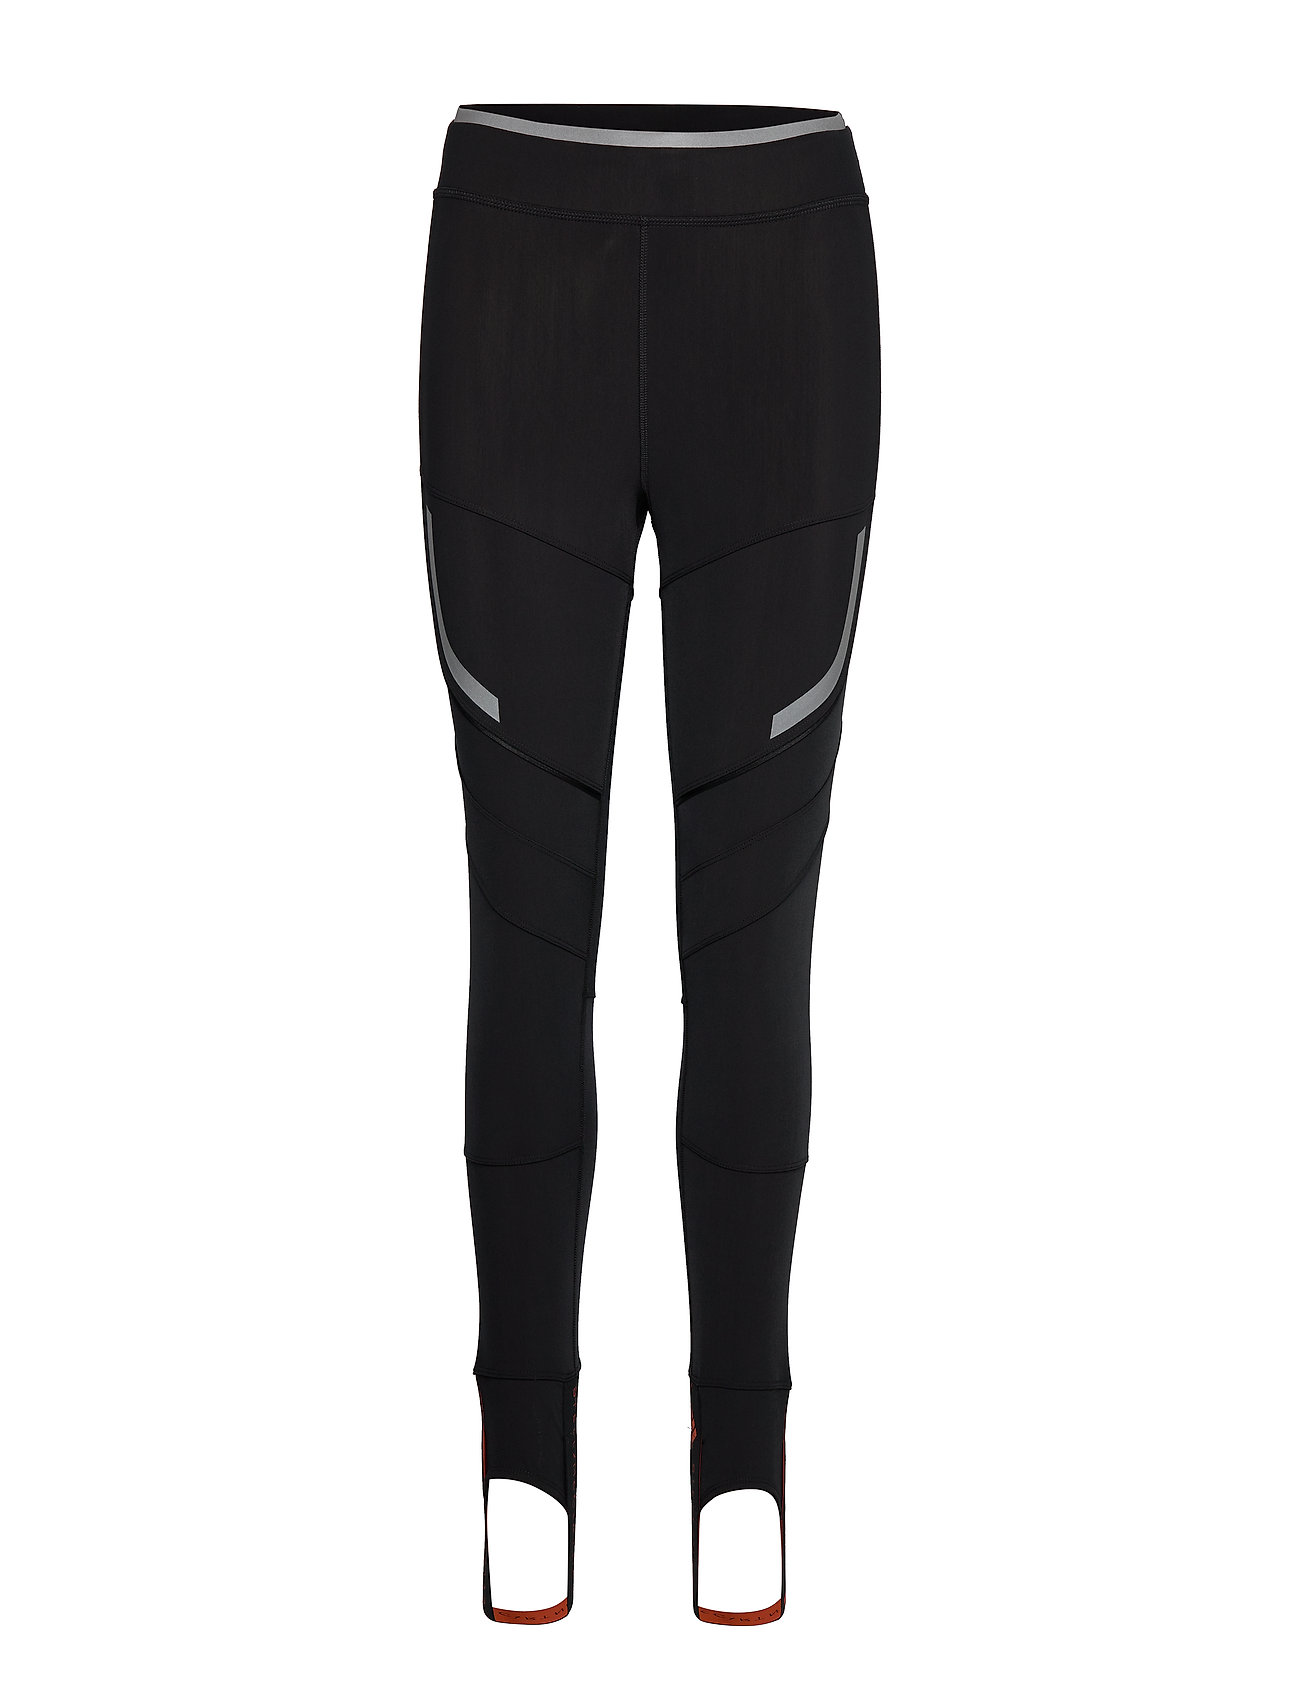 adidas by Stella McCartney RUN CLMHT TIGHT - BLACK